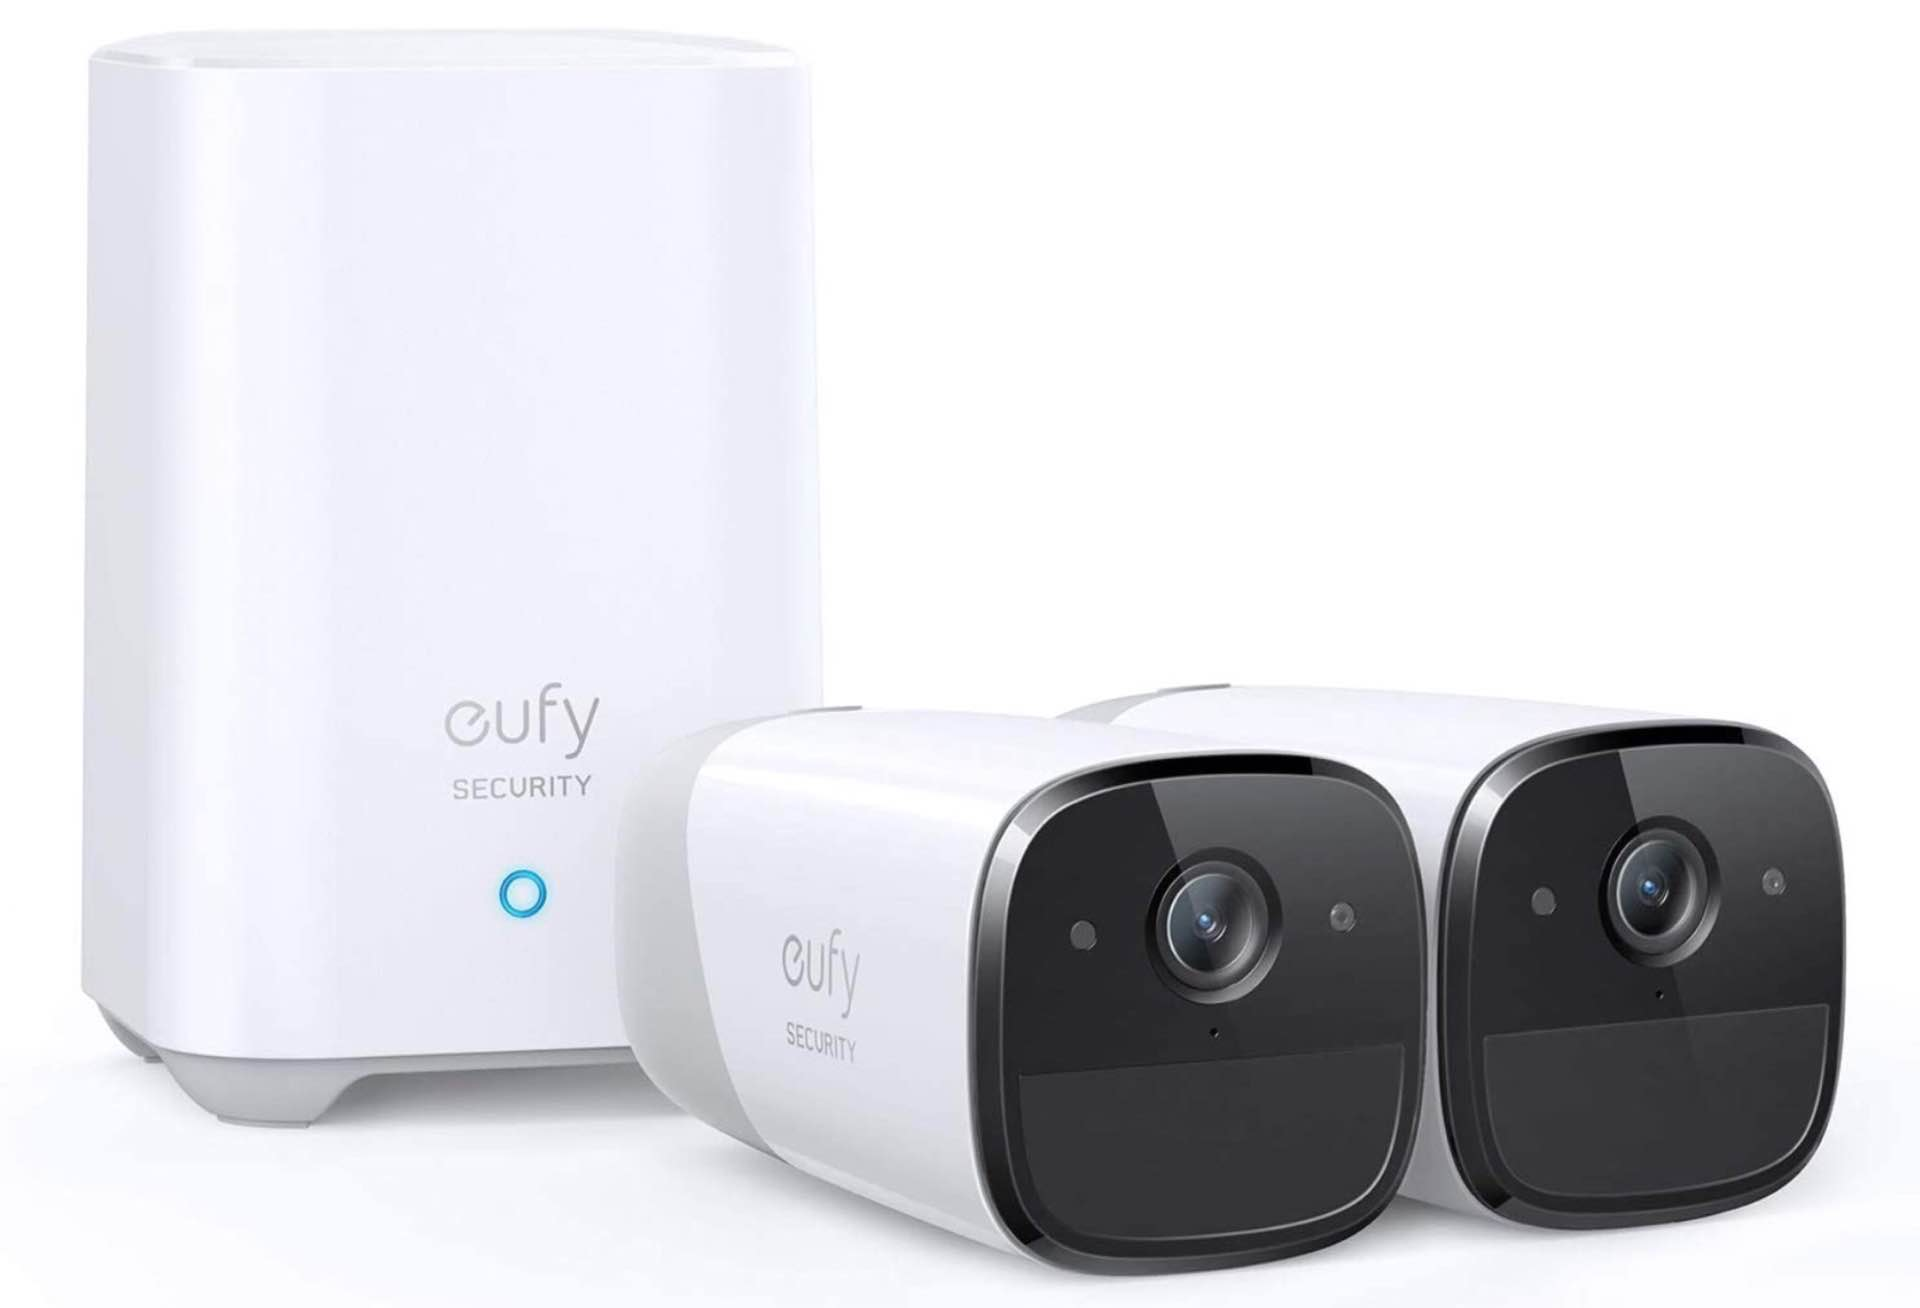 anker-eufycam-2-pro-wireless-home-security-camera-system